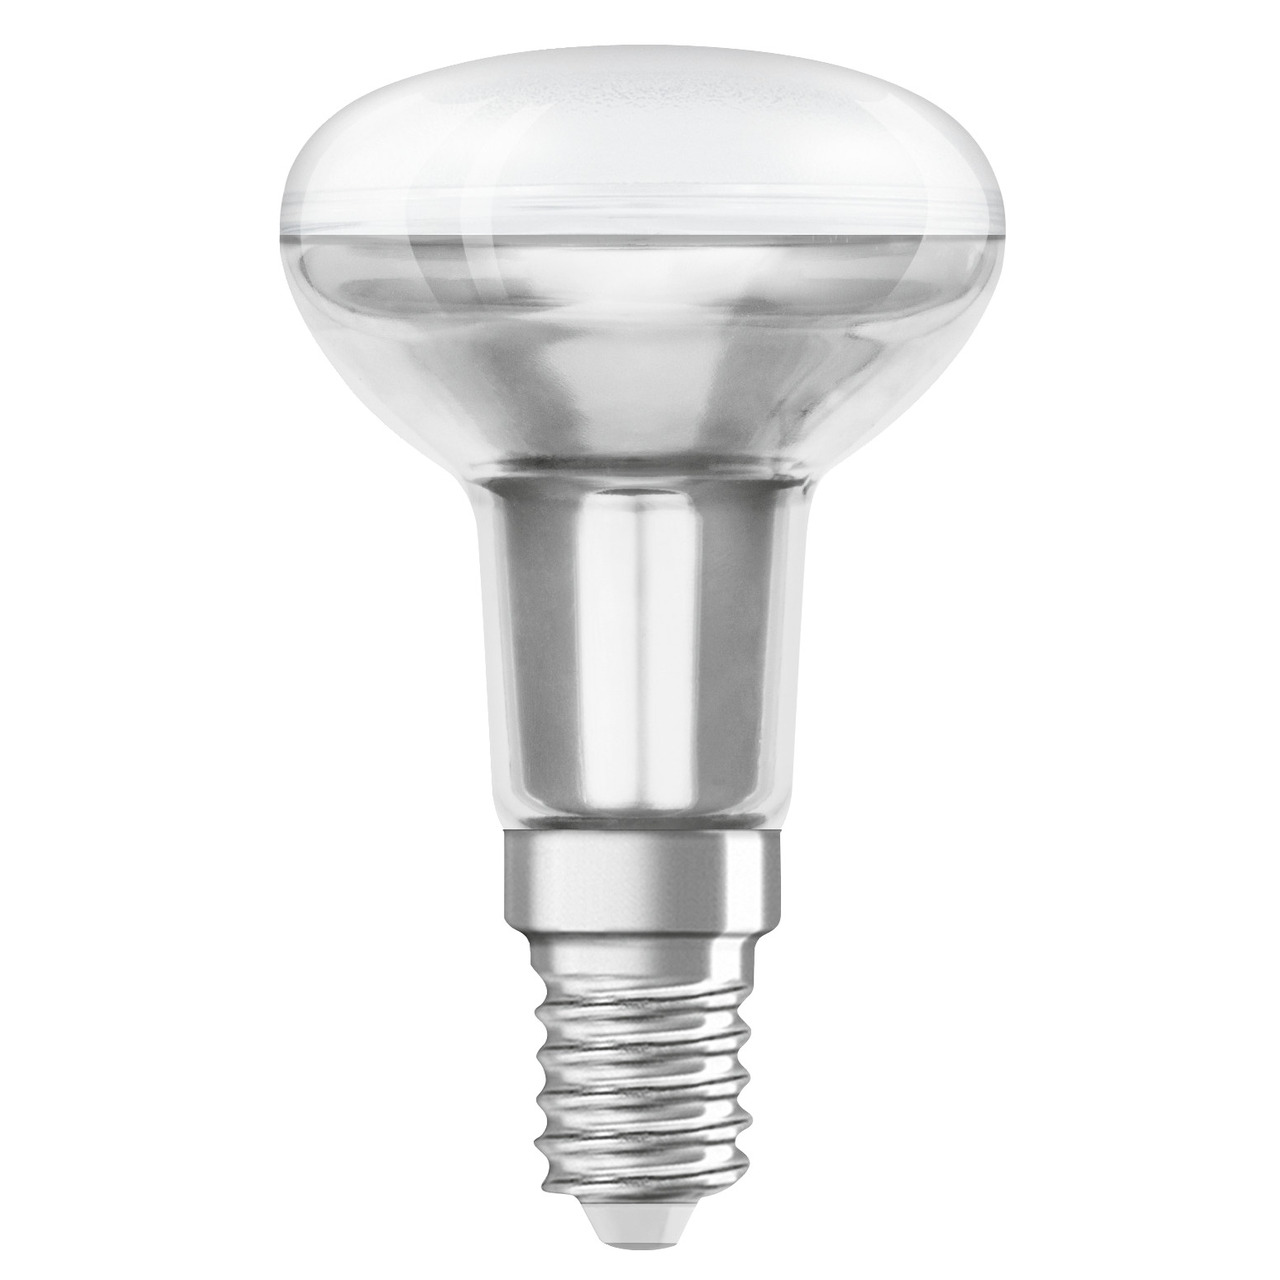 OSRAM 2er Pack 3-7-W-R50-LED-Reflektorlampen E14- warmweiss- 36-